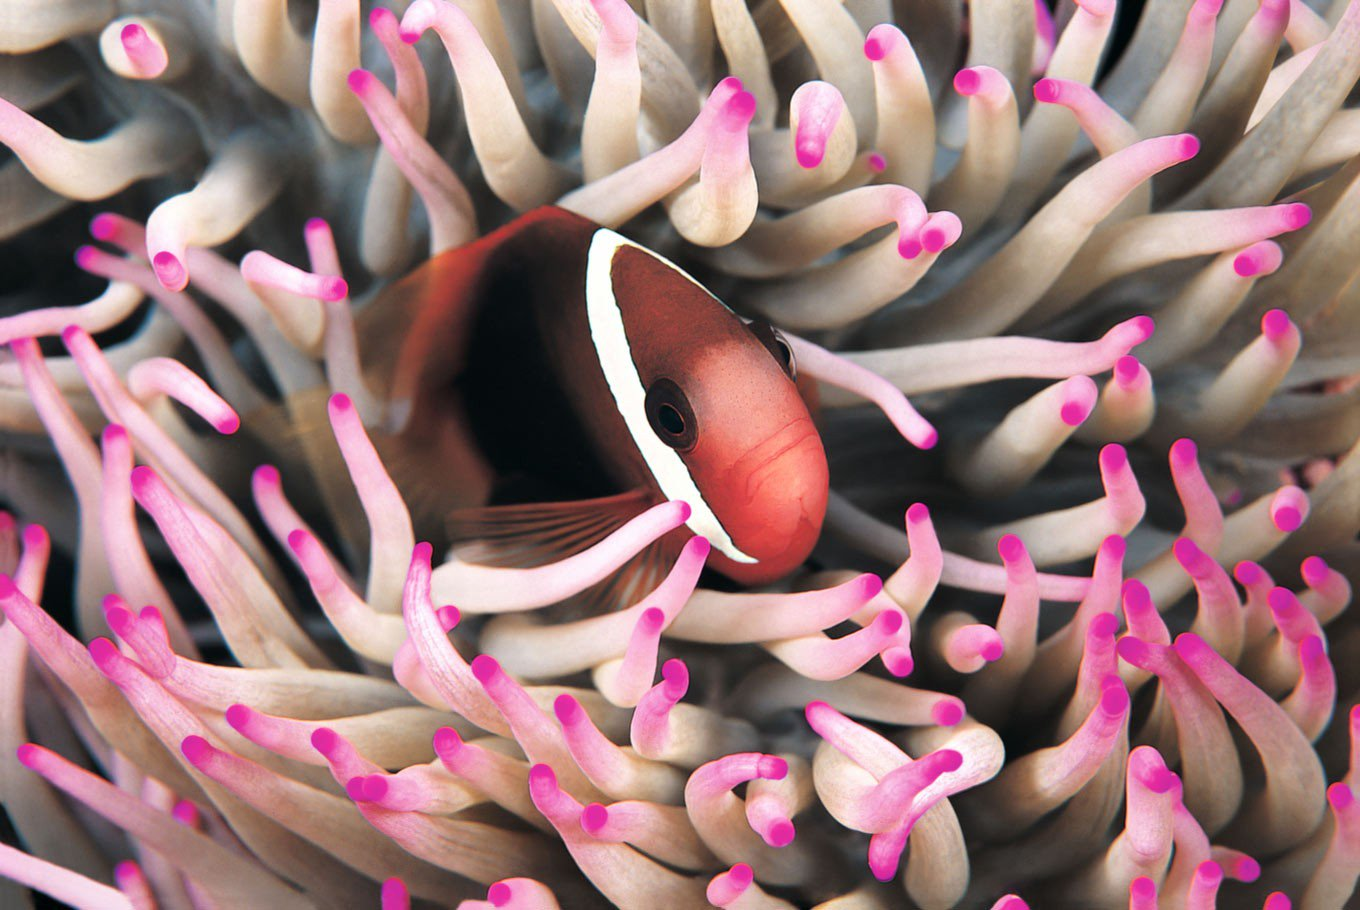 Fire clownfish hiding in anemones at Wakatobi. (Shutterstock/File)